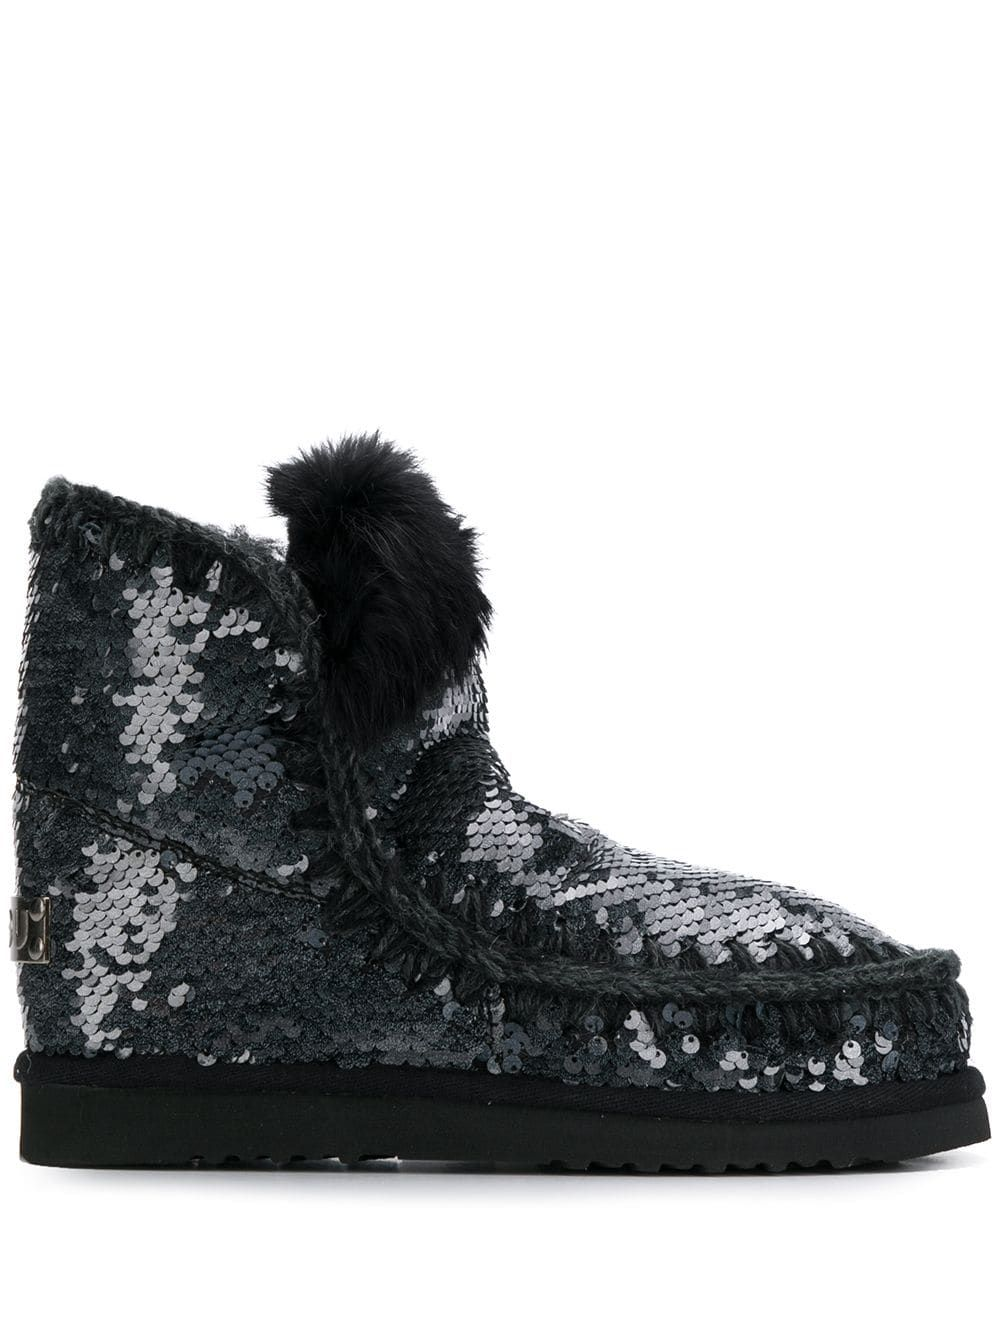 Mou sequin embellished Eskimo boots Blue in 2019 | Boots